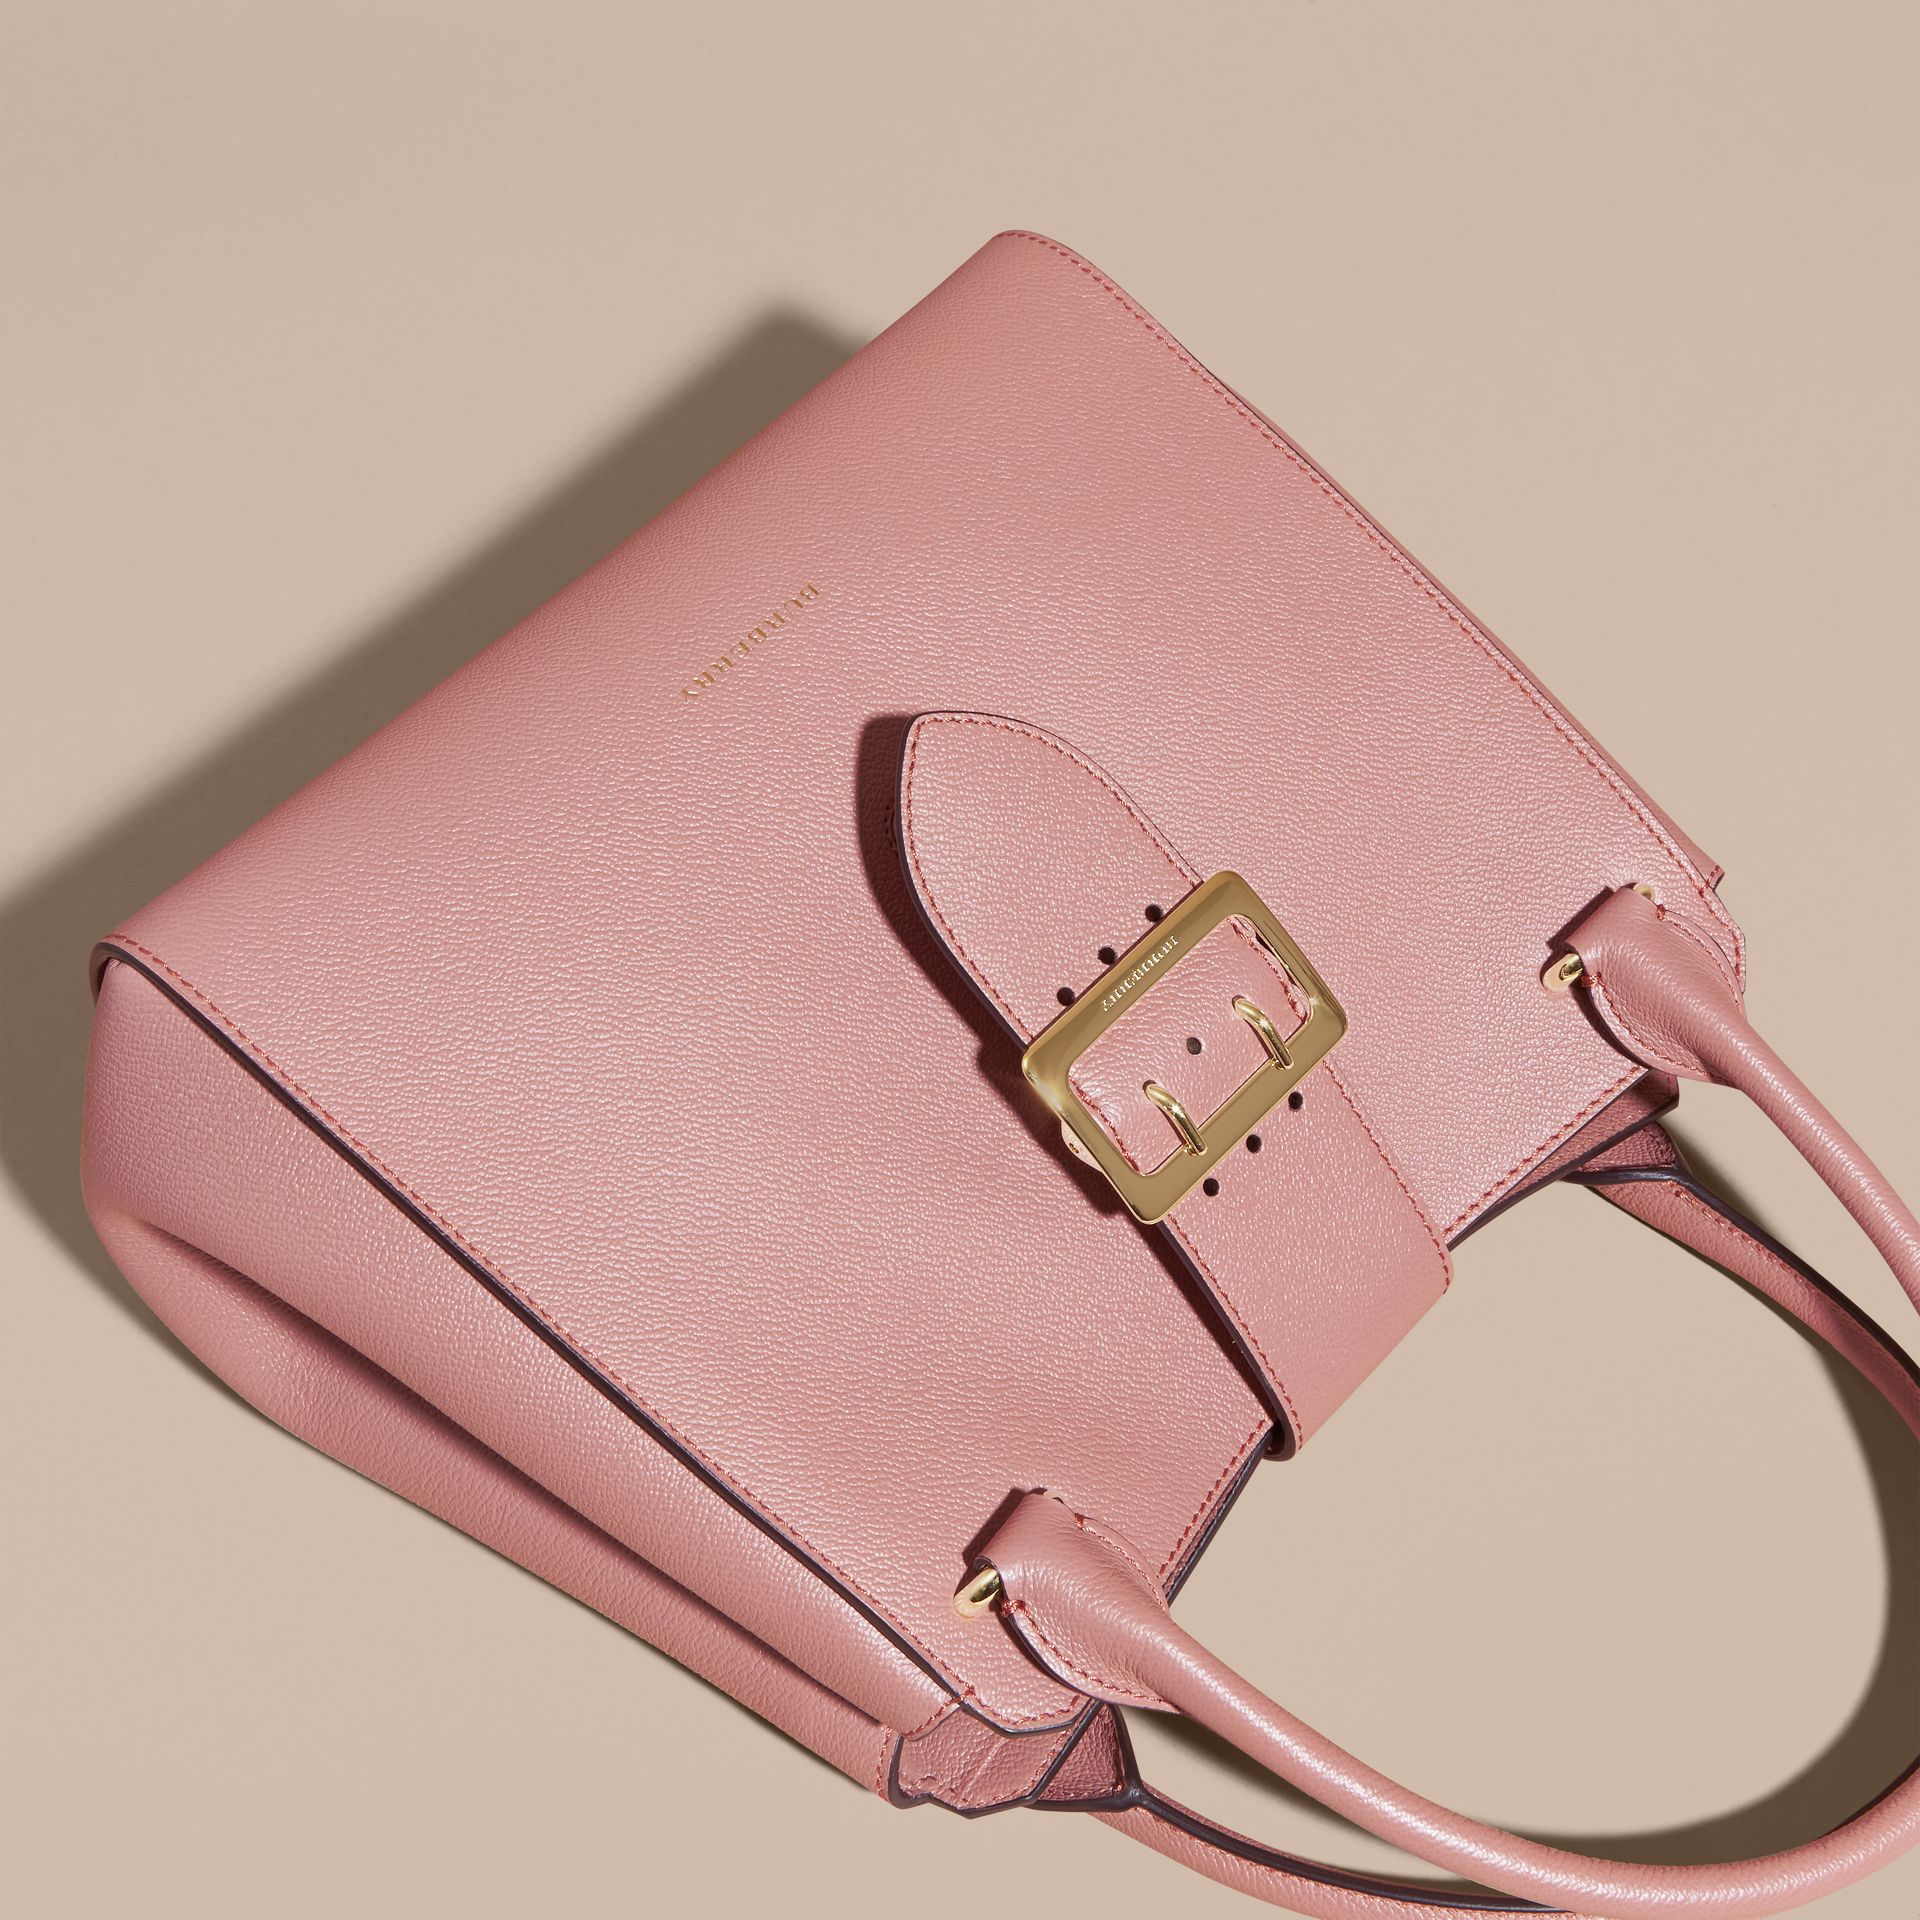 The Medium Buckle Tote in Grainy Leather in Dusty Pink - gallery image 8